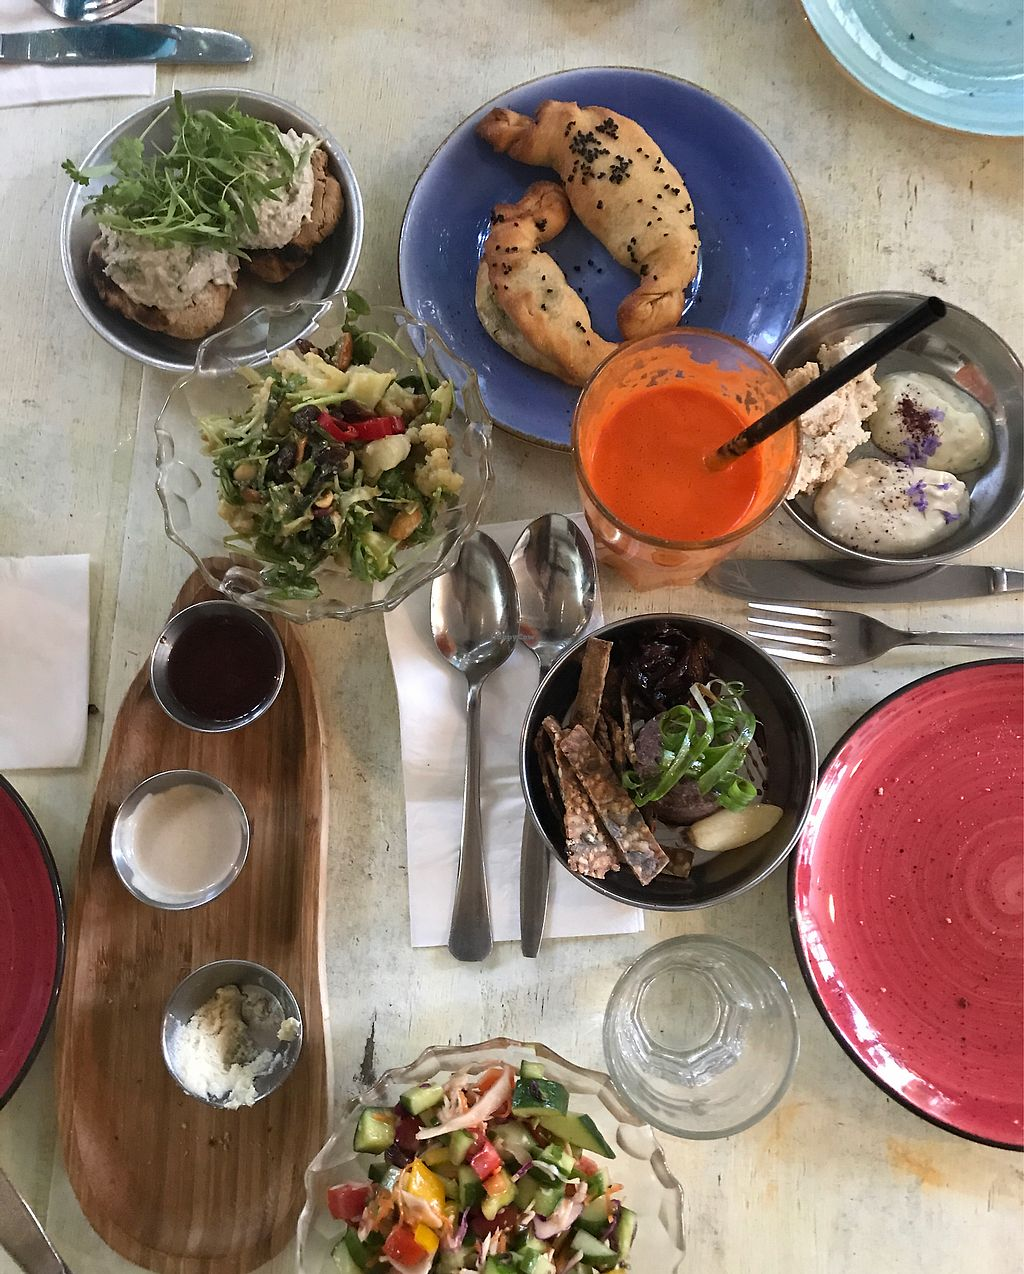 """Photo of Meshek Barzilay  by <a href=""""/members/profile/TravelVeggie"""">TravelVeggie</a> <br/>Breakfast for 2 (for 3) <br/> December 7, 2017  - <a href='/contact/abuse/image/37930/333176'>Report</a>"""